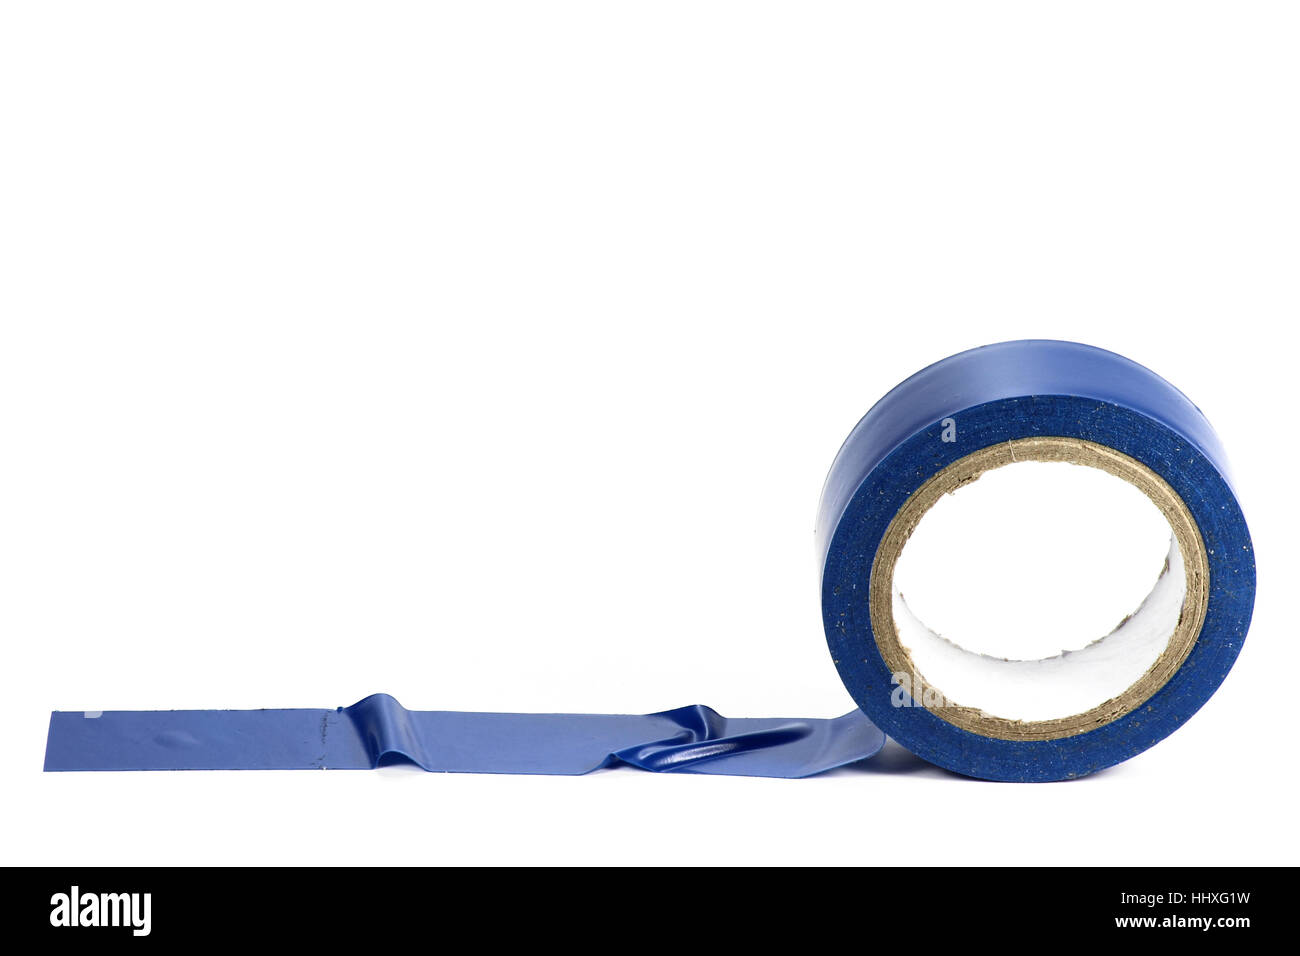 Electrical Tape Stock Photos & Electrical Tape Stock Images - Alamy